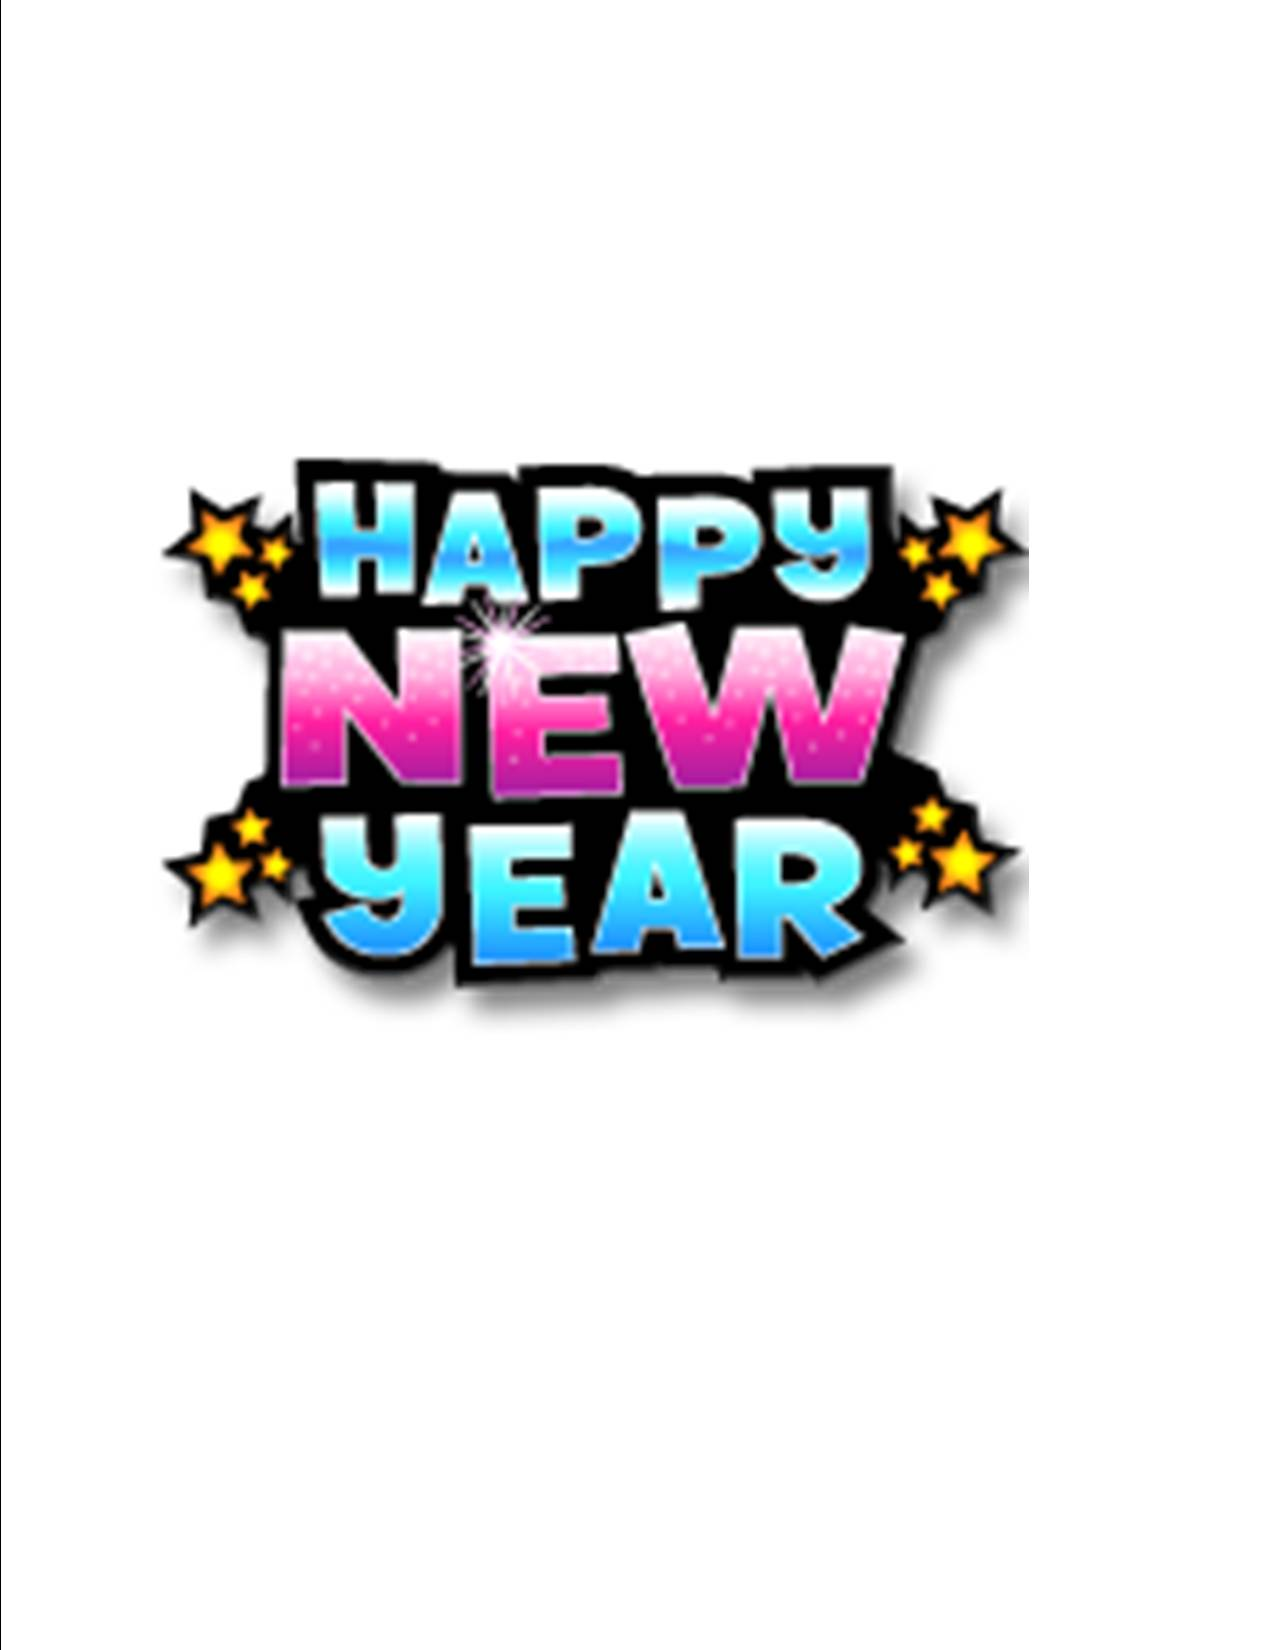 Free clipart new years eve 2019 religious png royalty free download Happy new year clip art at lakeshore learning image - Clip Art Library png royalty free download